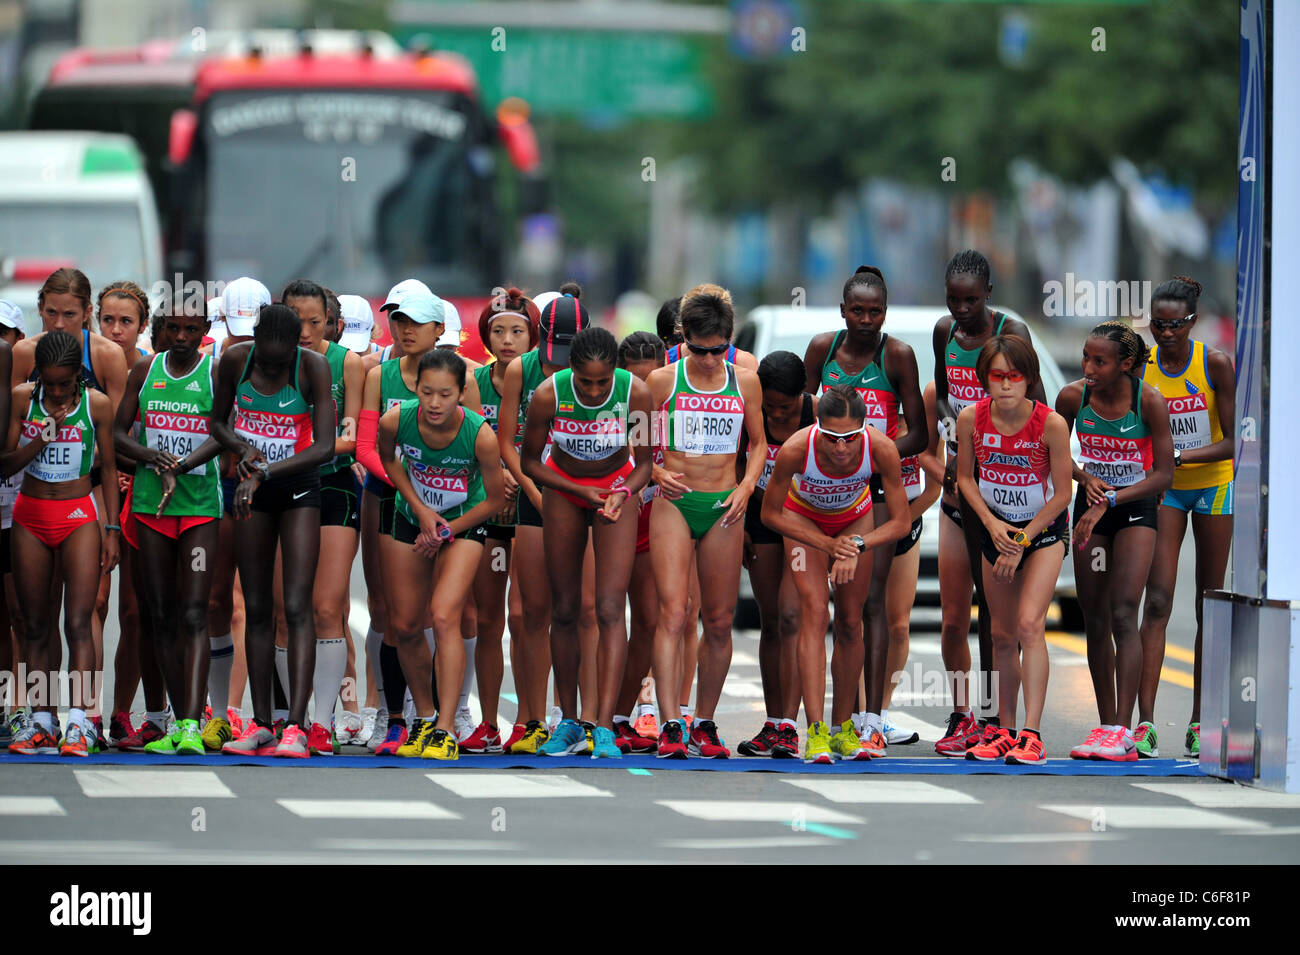 General view of the 13th IAAF World Championships in Athletics. - Stock Image